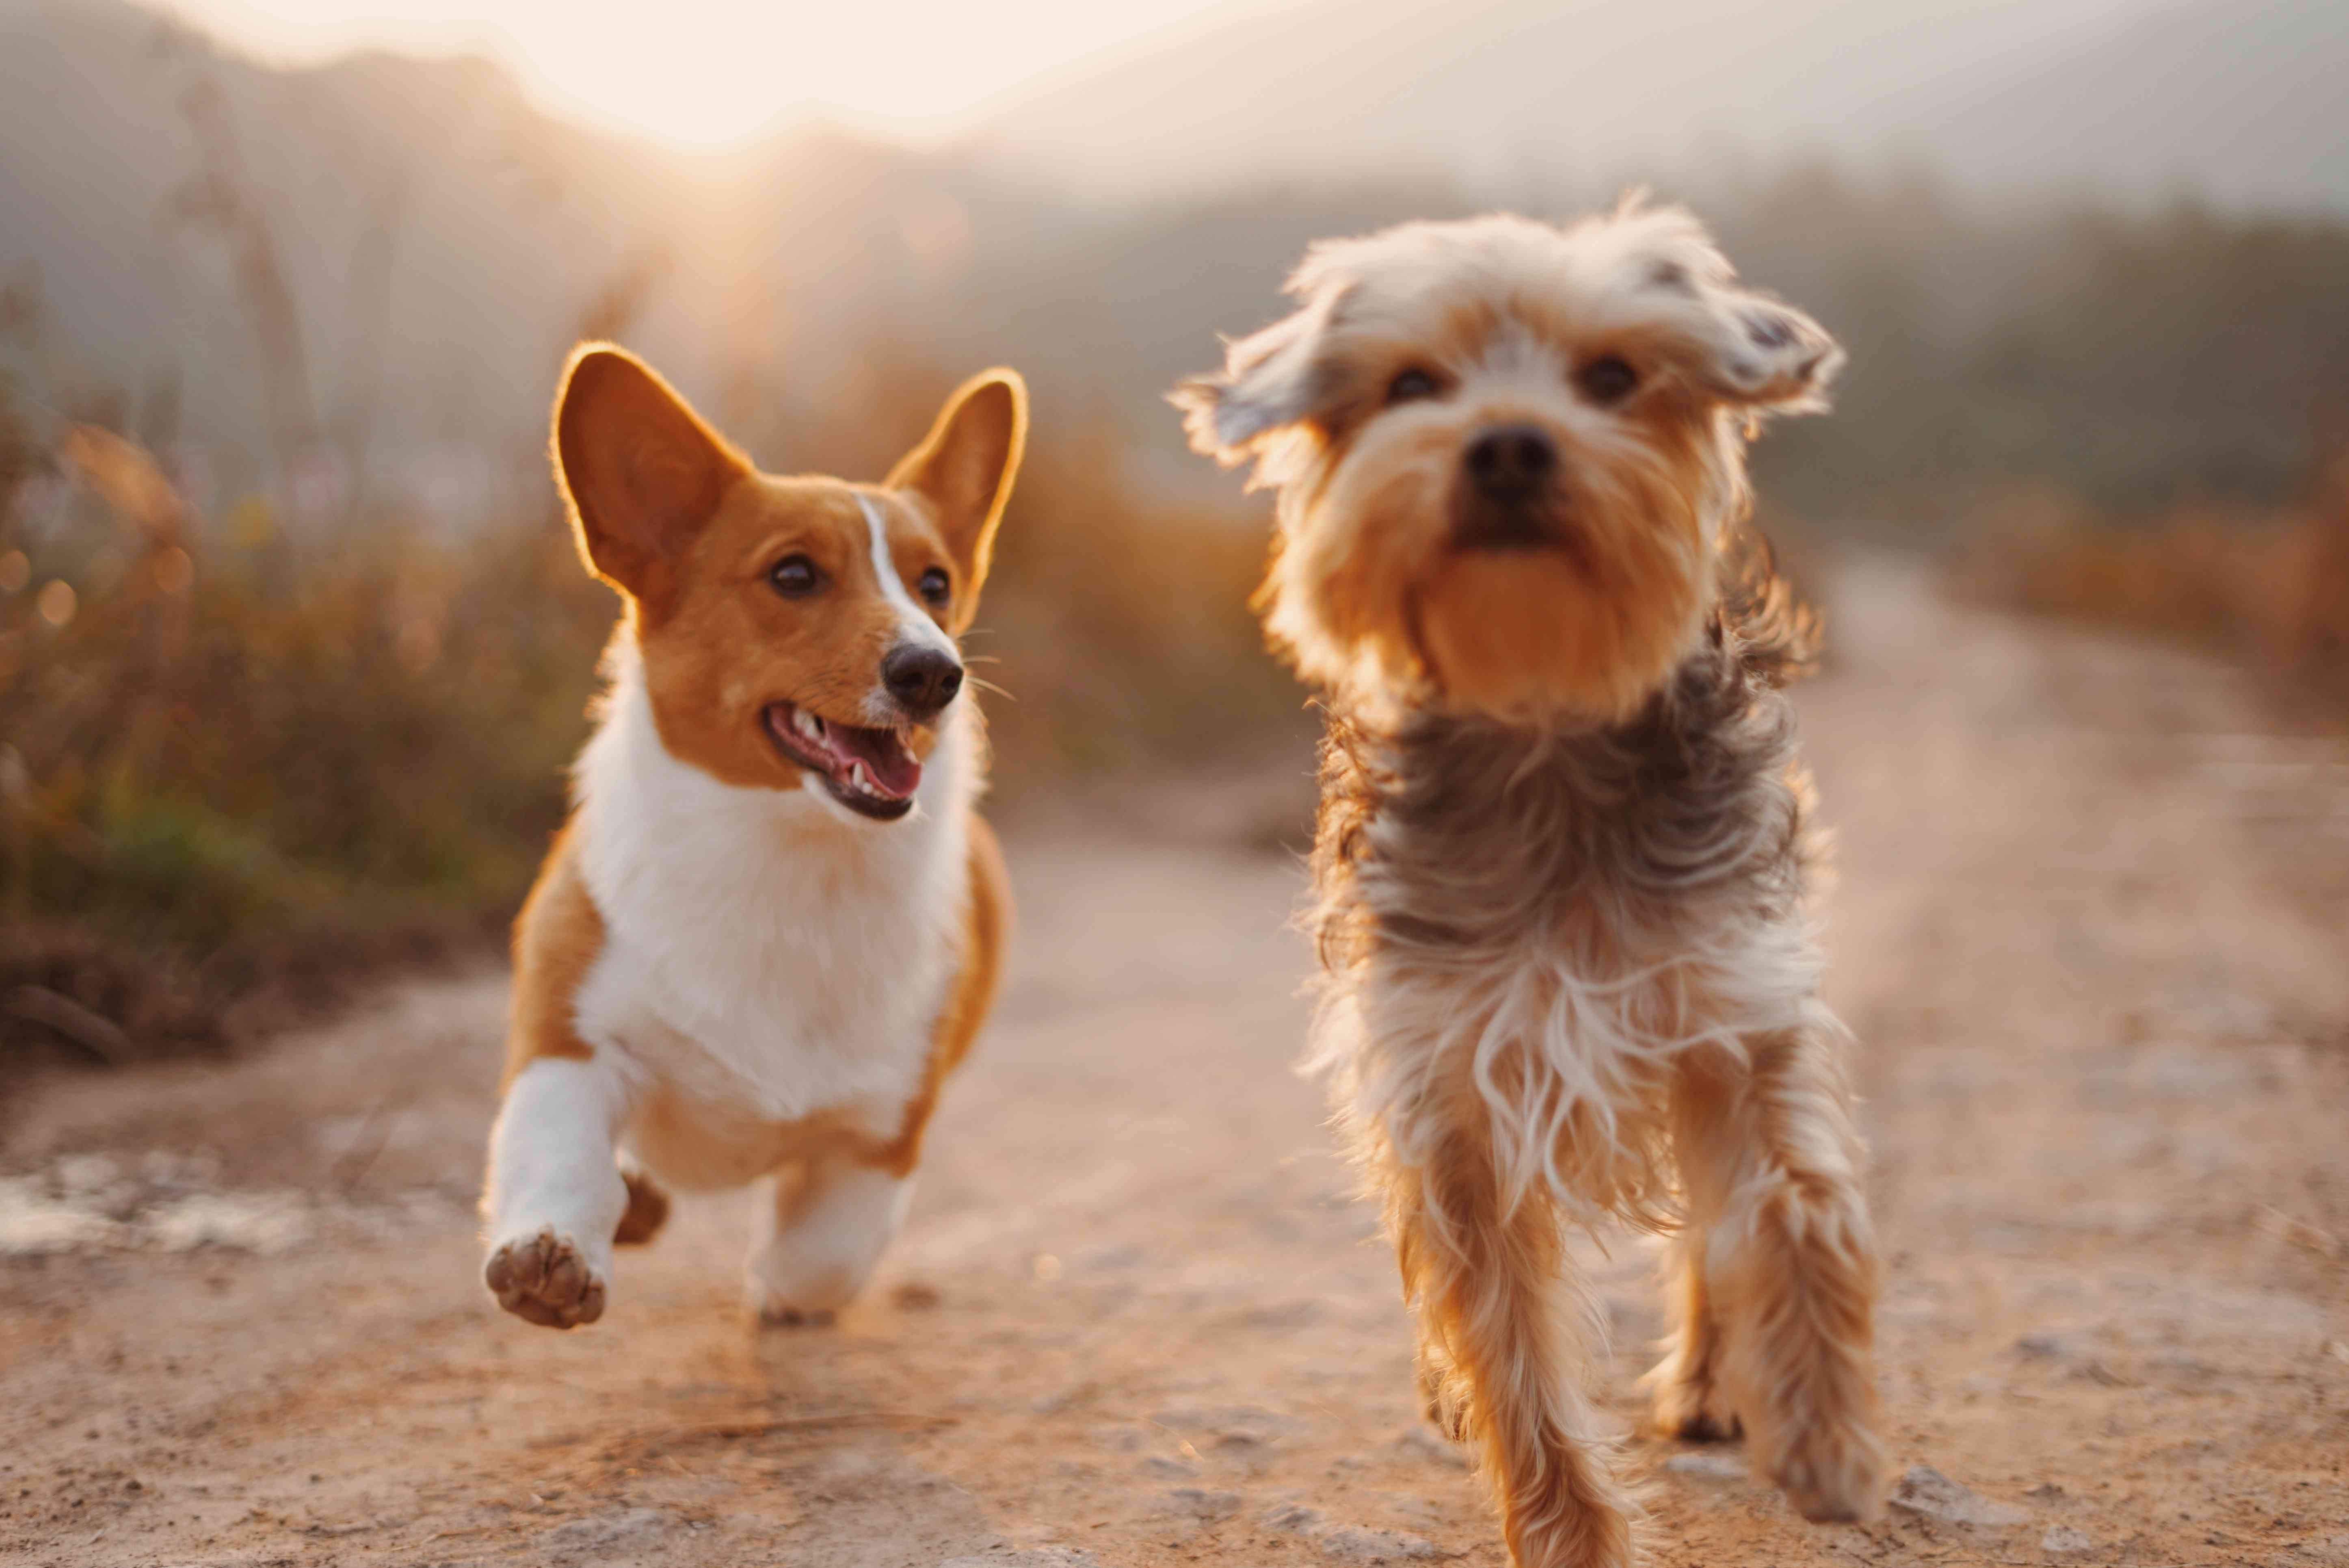 Two small dogs running together on a dirt road.